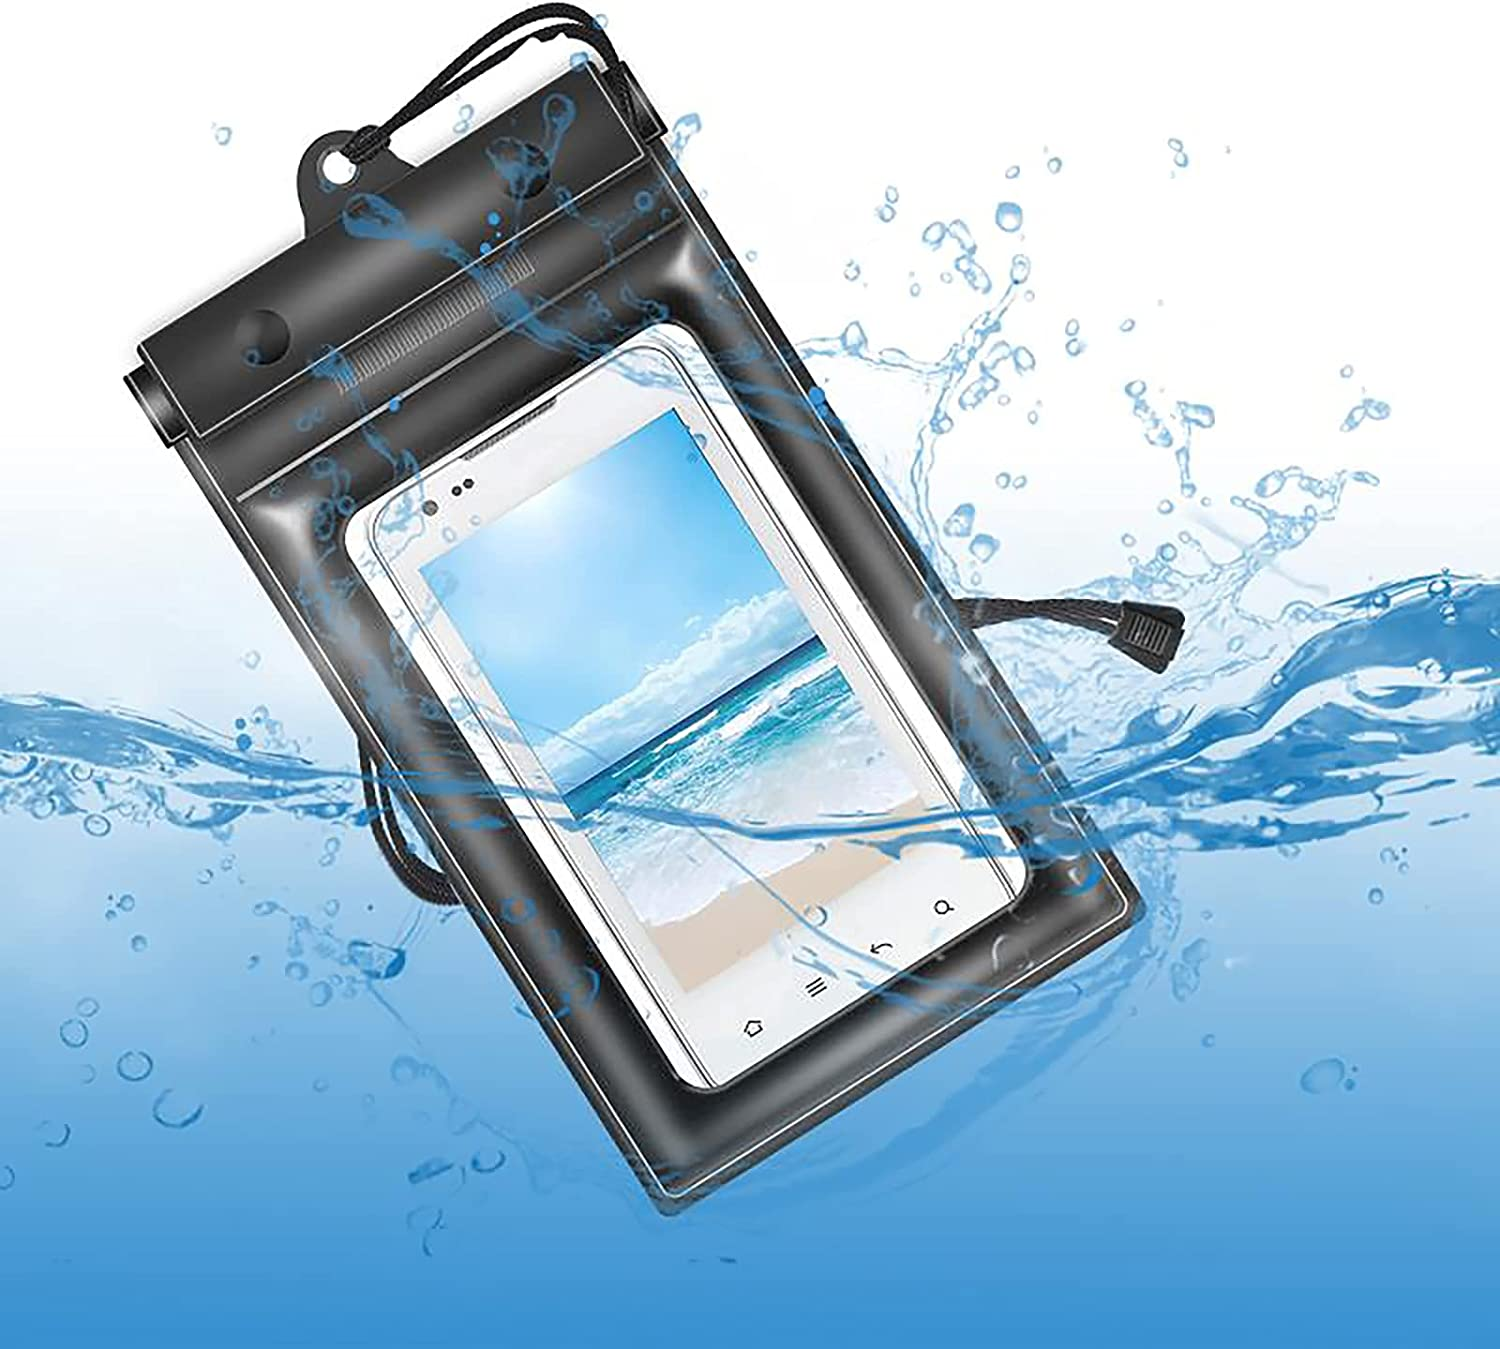 FLY OCEAN Waterproof Phone Pouch,Universal Waterproof Case Compatible Underwater Dry Bag with Lanyard for iPhone Xs Max/XR/X/8/7 Plus Galaxy Pixel Up to 6.5